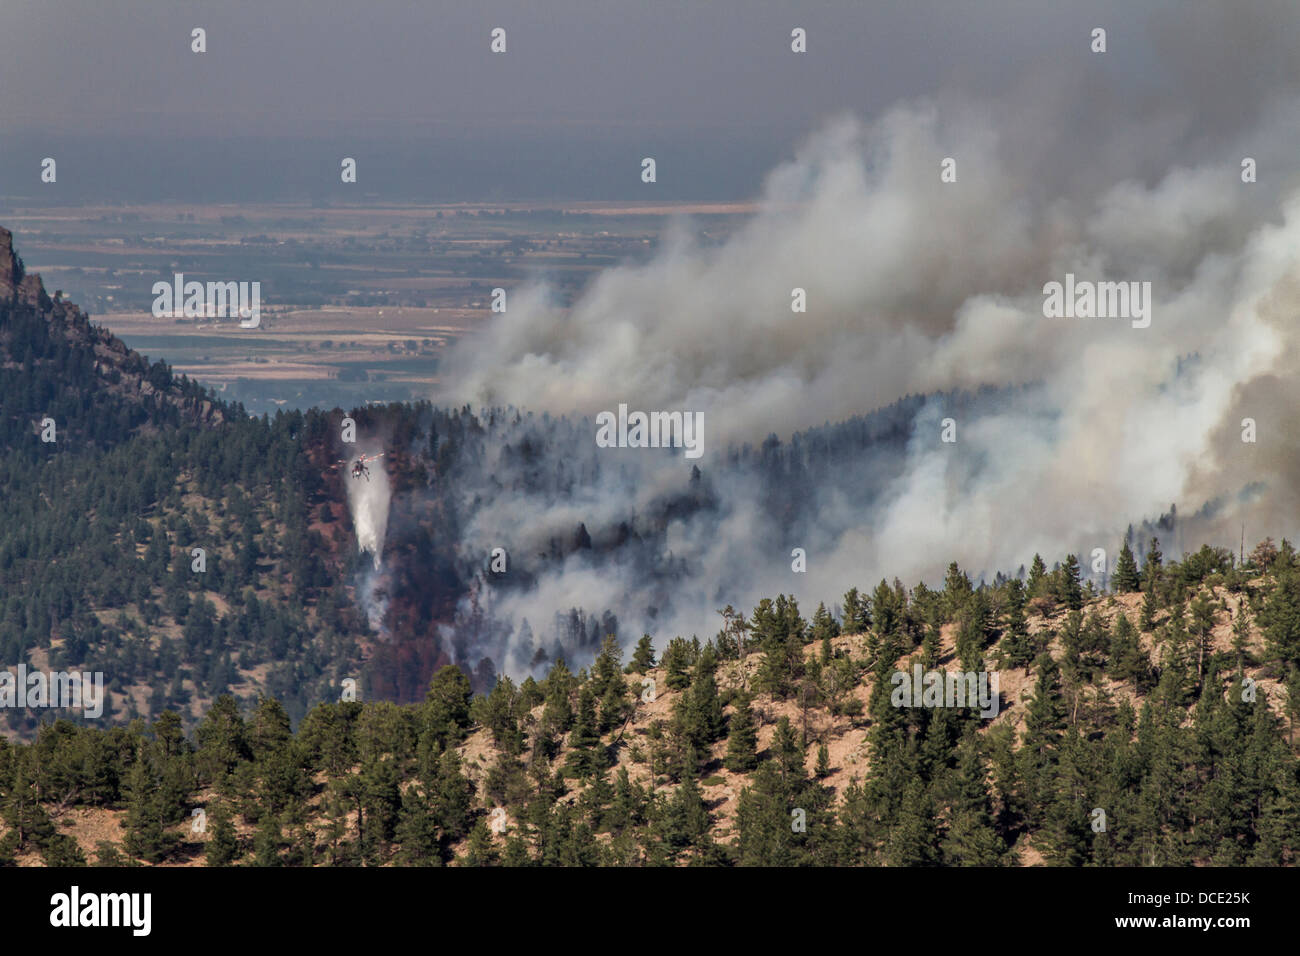 USA, Colorado, Boulder, Flagstaff Fire, Helicopter Dropping Water on